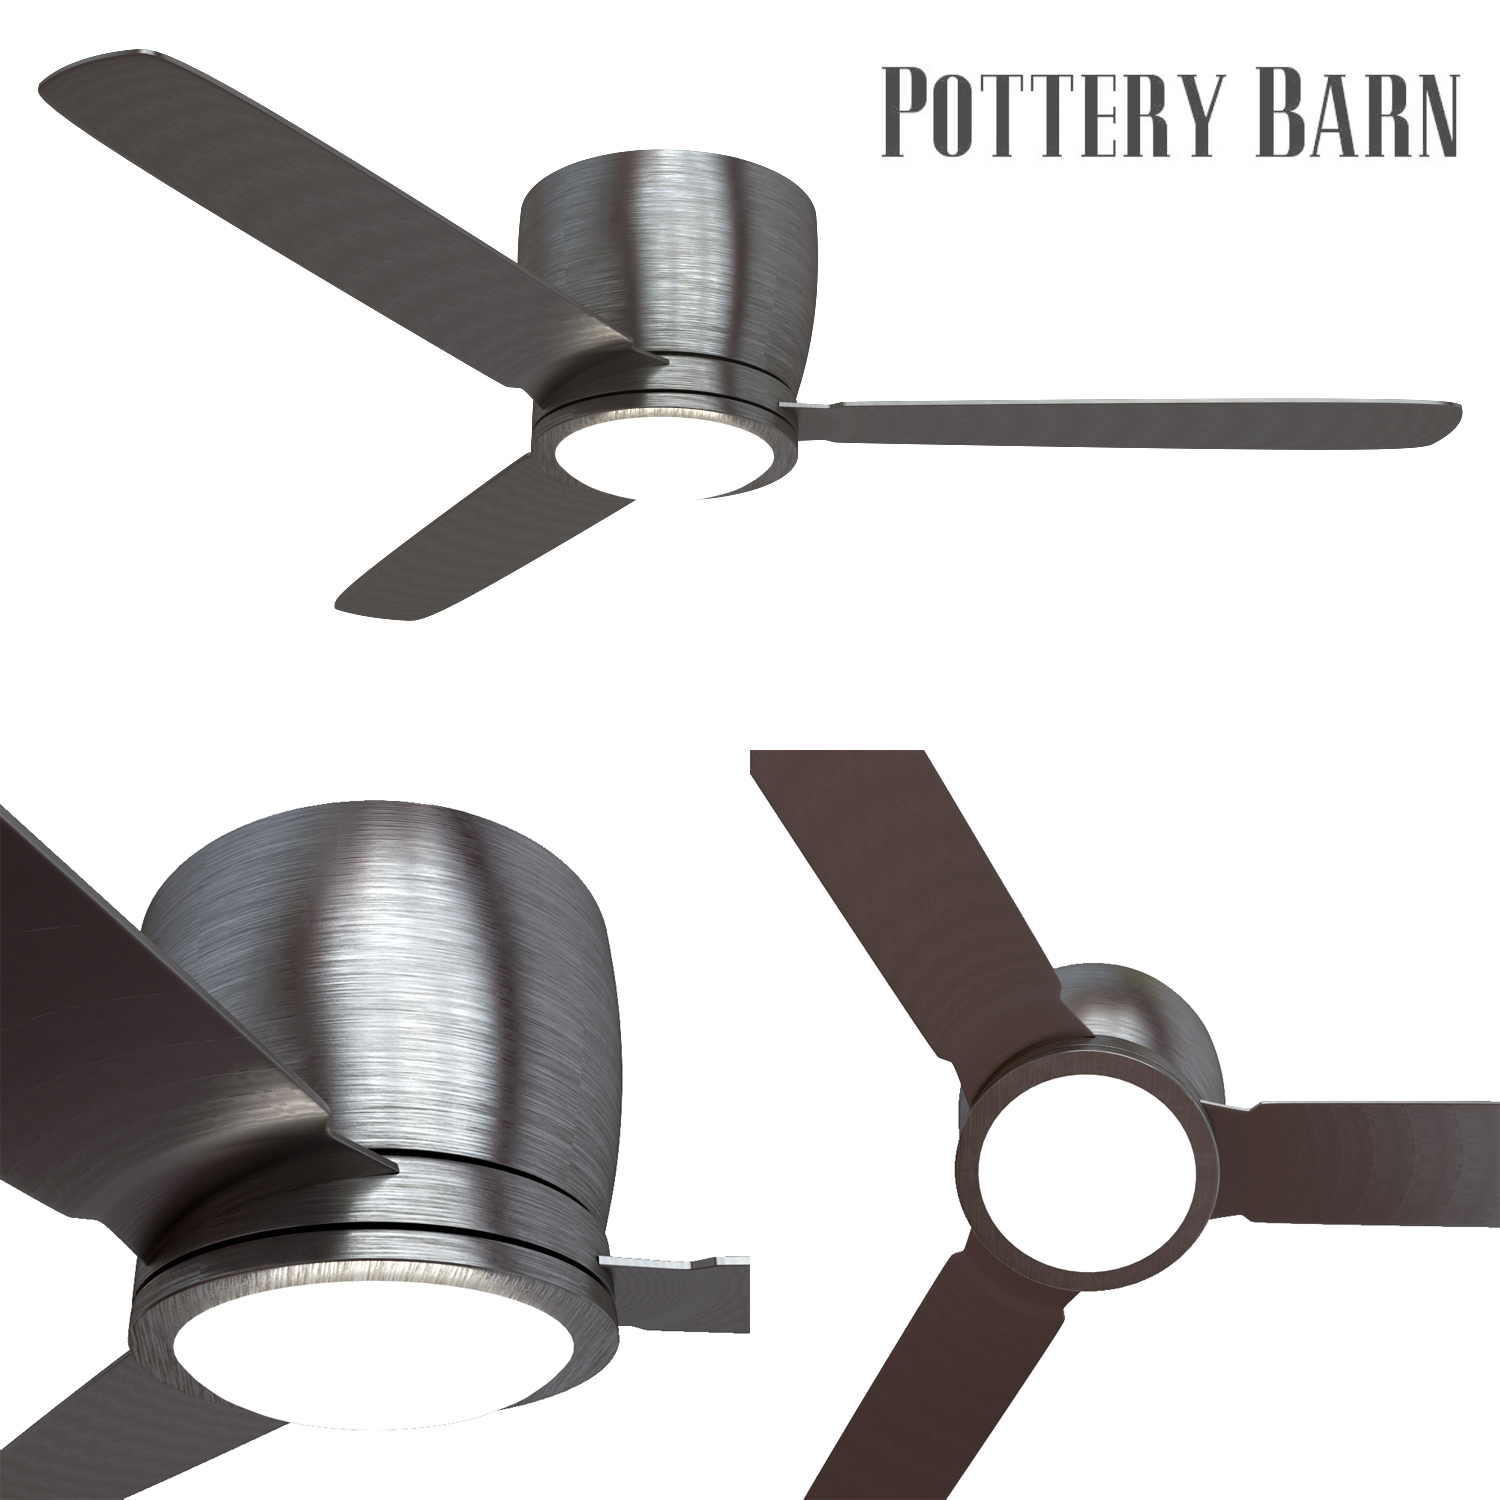 Pottery barn ceiling fan brushed nickel by erkinaliyev 3docean embrace ceiling fan brushed nickel preview 590g embrace ceiling fan brushed nickel preview thumbnailg mozeypictures Image collections